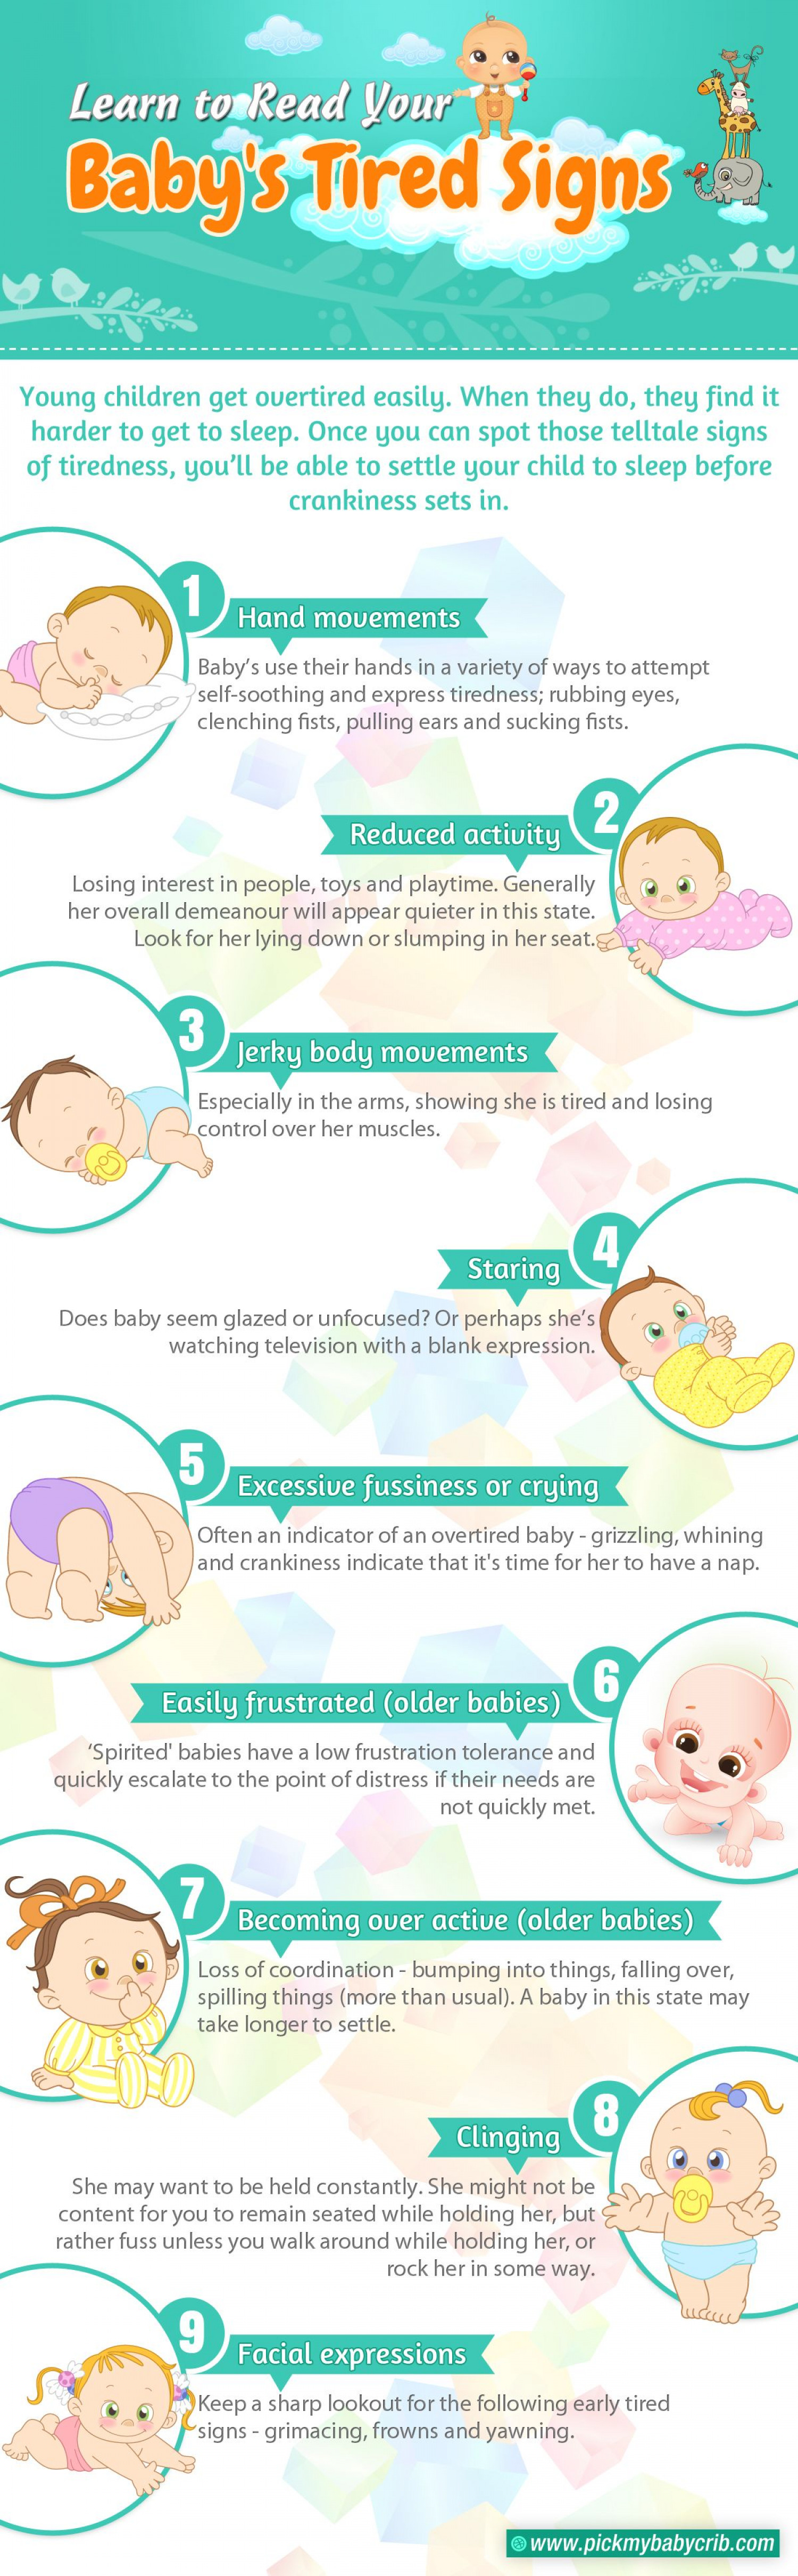 Learn To Read Your Baby's Tired Signs  Infographic